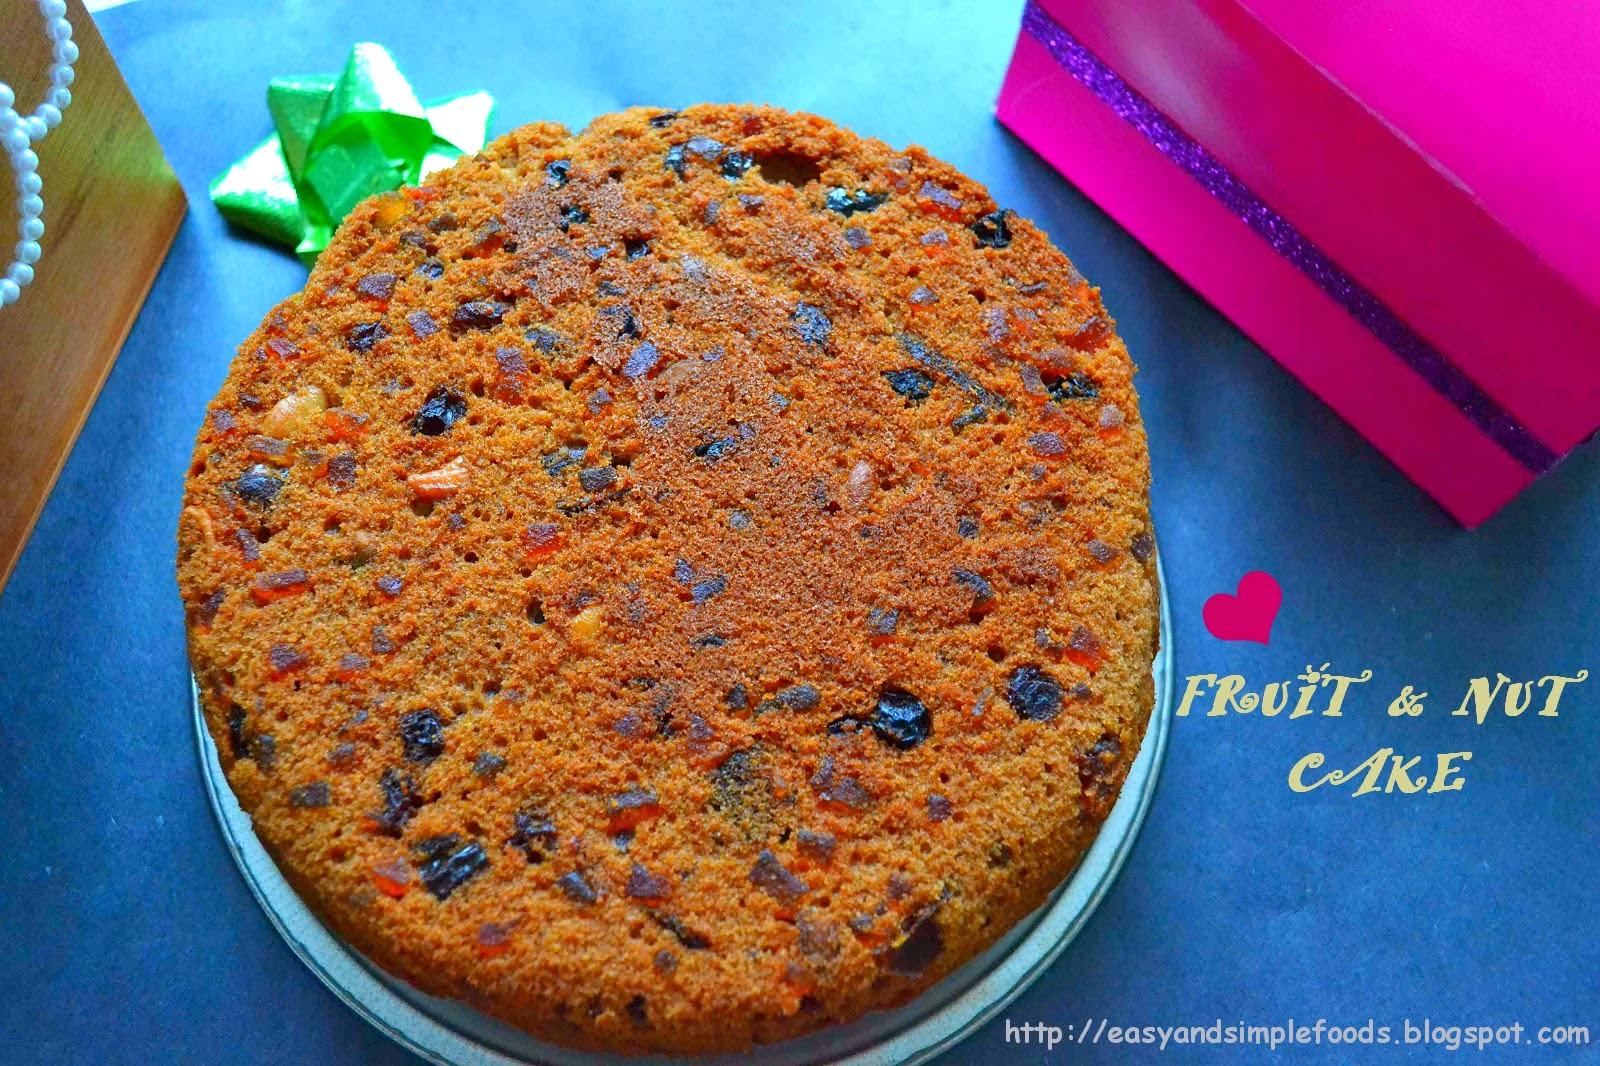 http://easyandsimplefoods.blogspot.in/2014/02/fruit-and-nut-cake.html